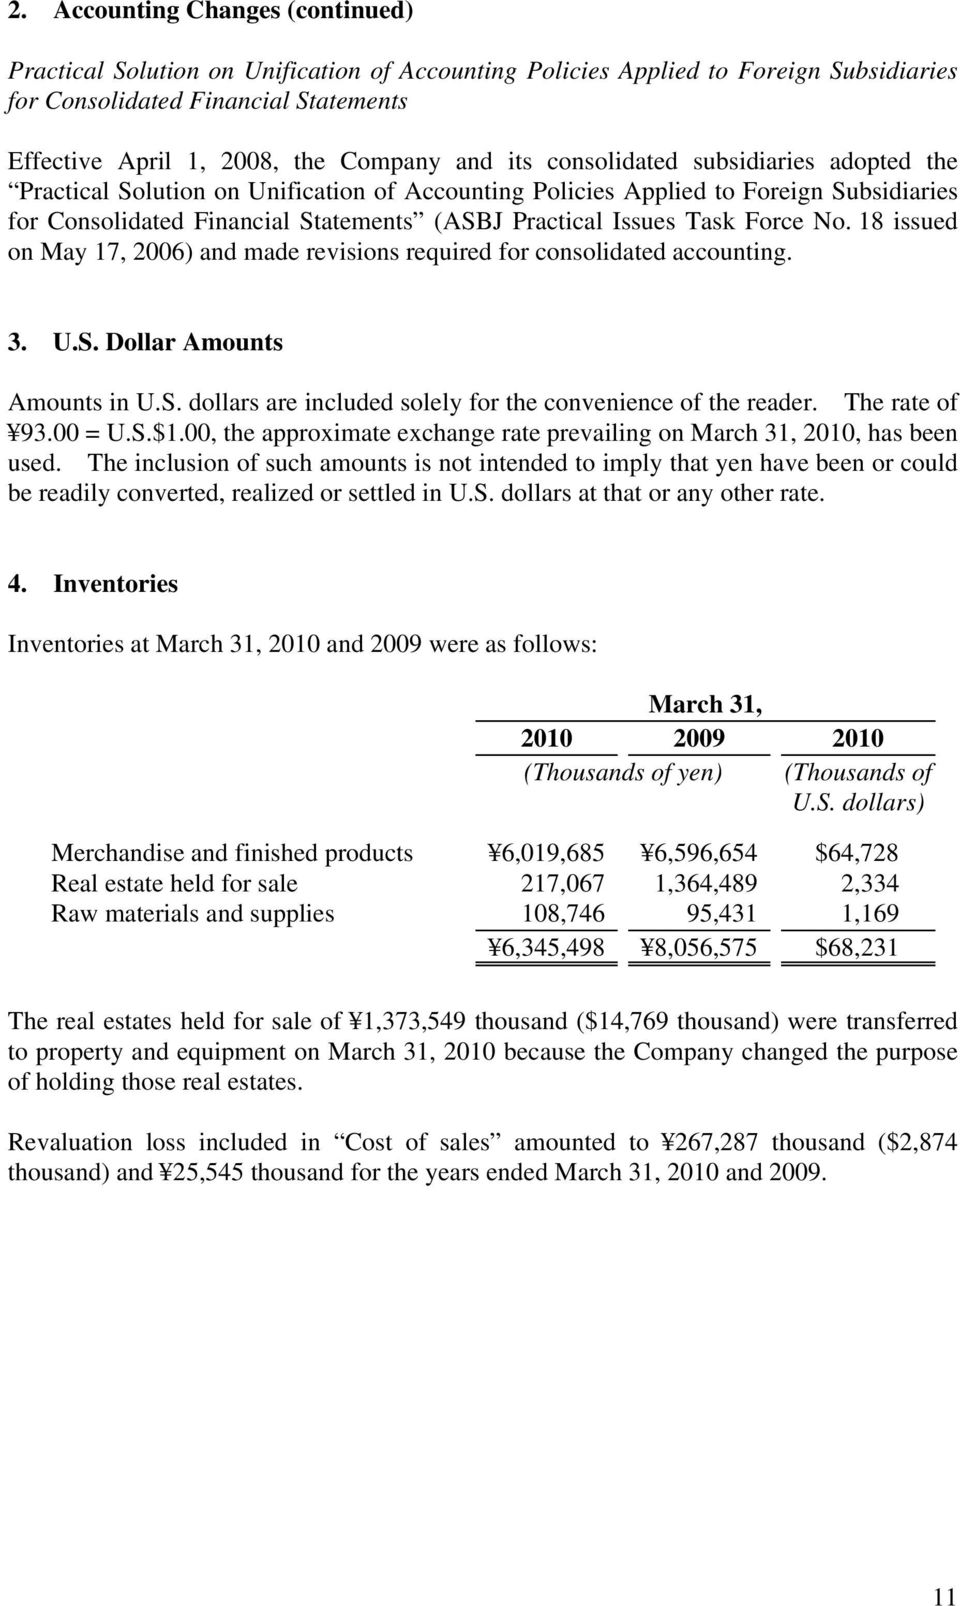 Task Force No. 18 issued on May 17, 2006) and made revisions required for consolidated accounting. 3. U.S. Dollar Amounts Amounts in U.S. dollars are included solely for the convenience of the reader.